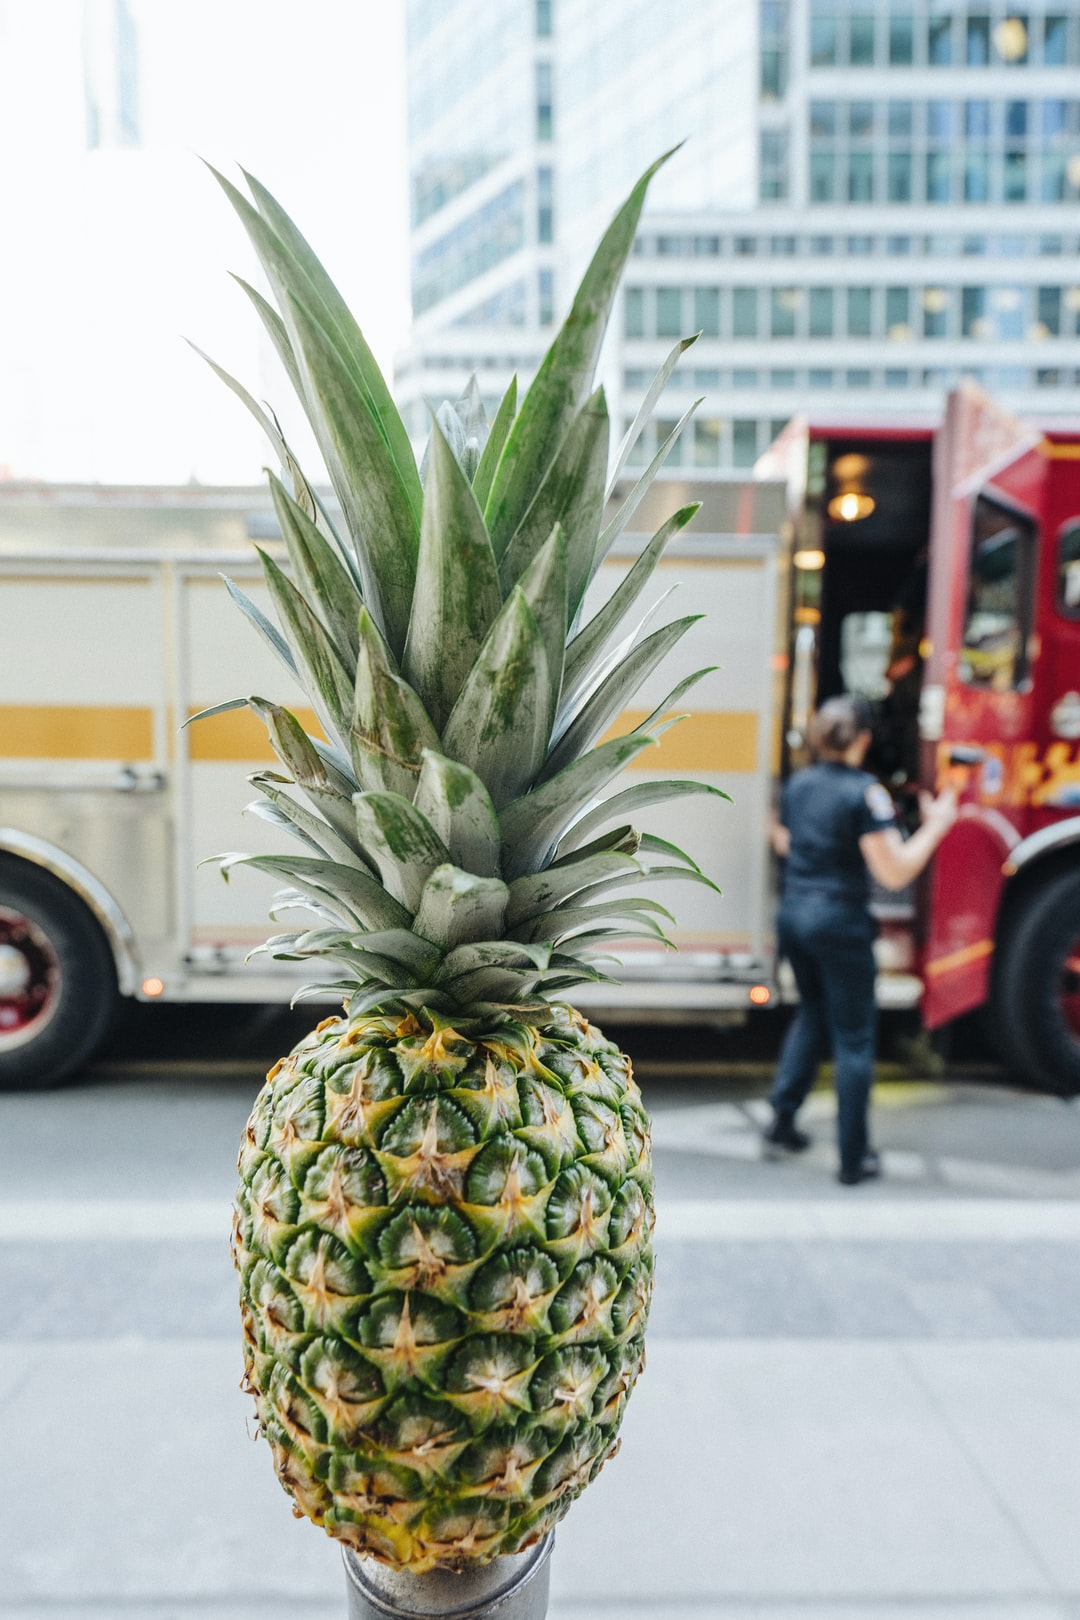 pineapple image from toronto for free download